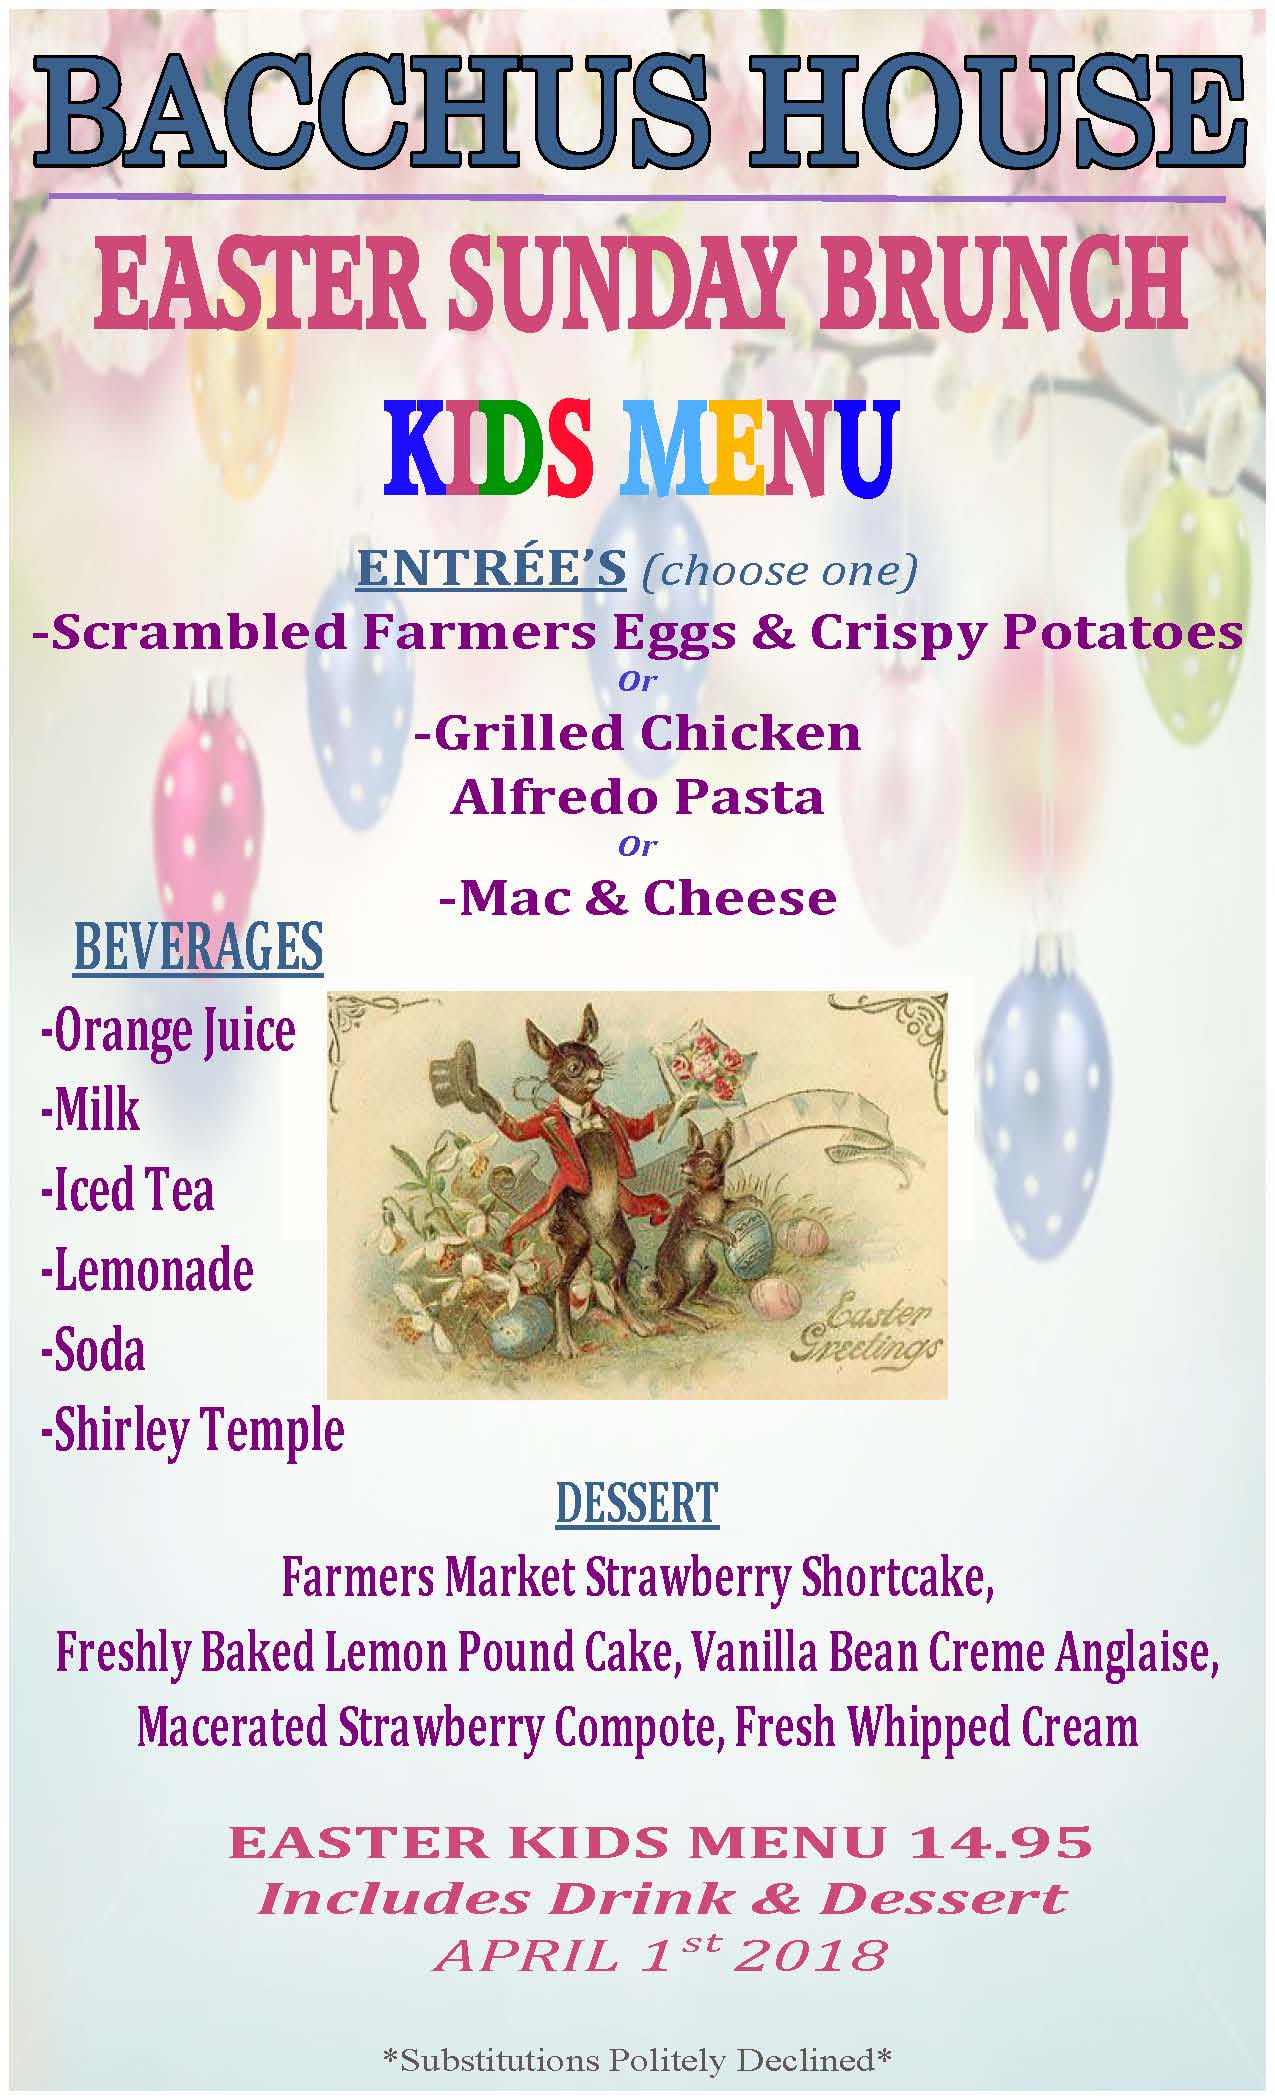 Easter Sunday Brunch Kid's Menu - 2018